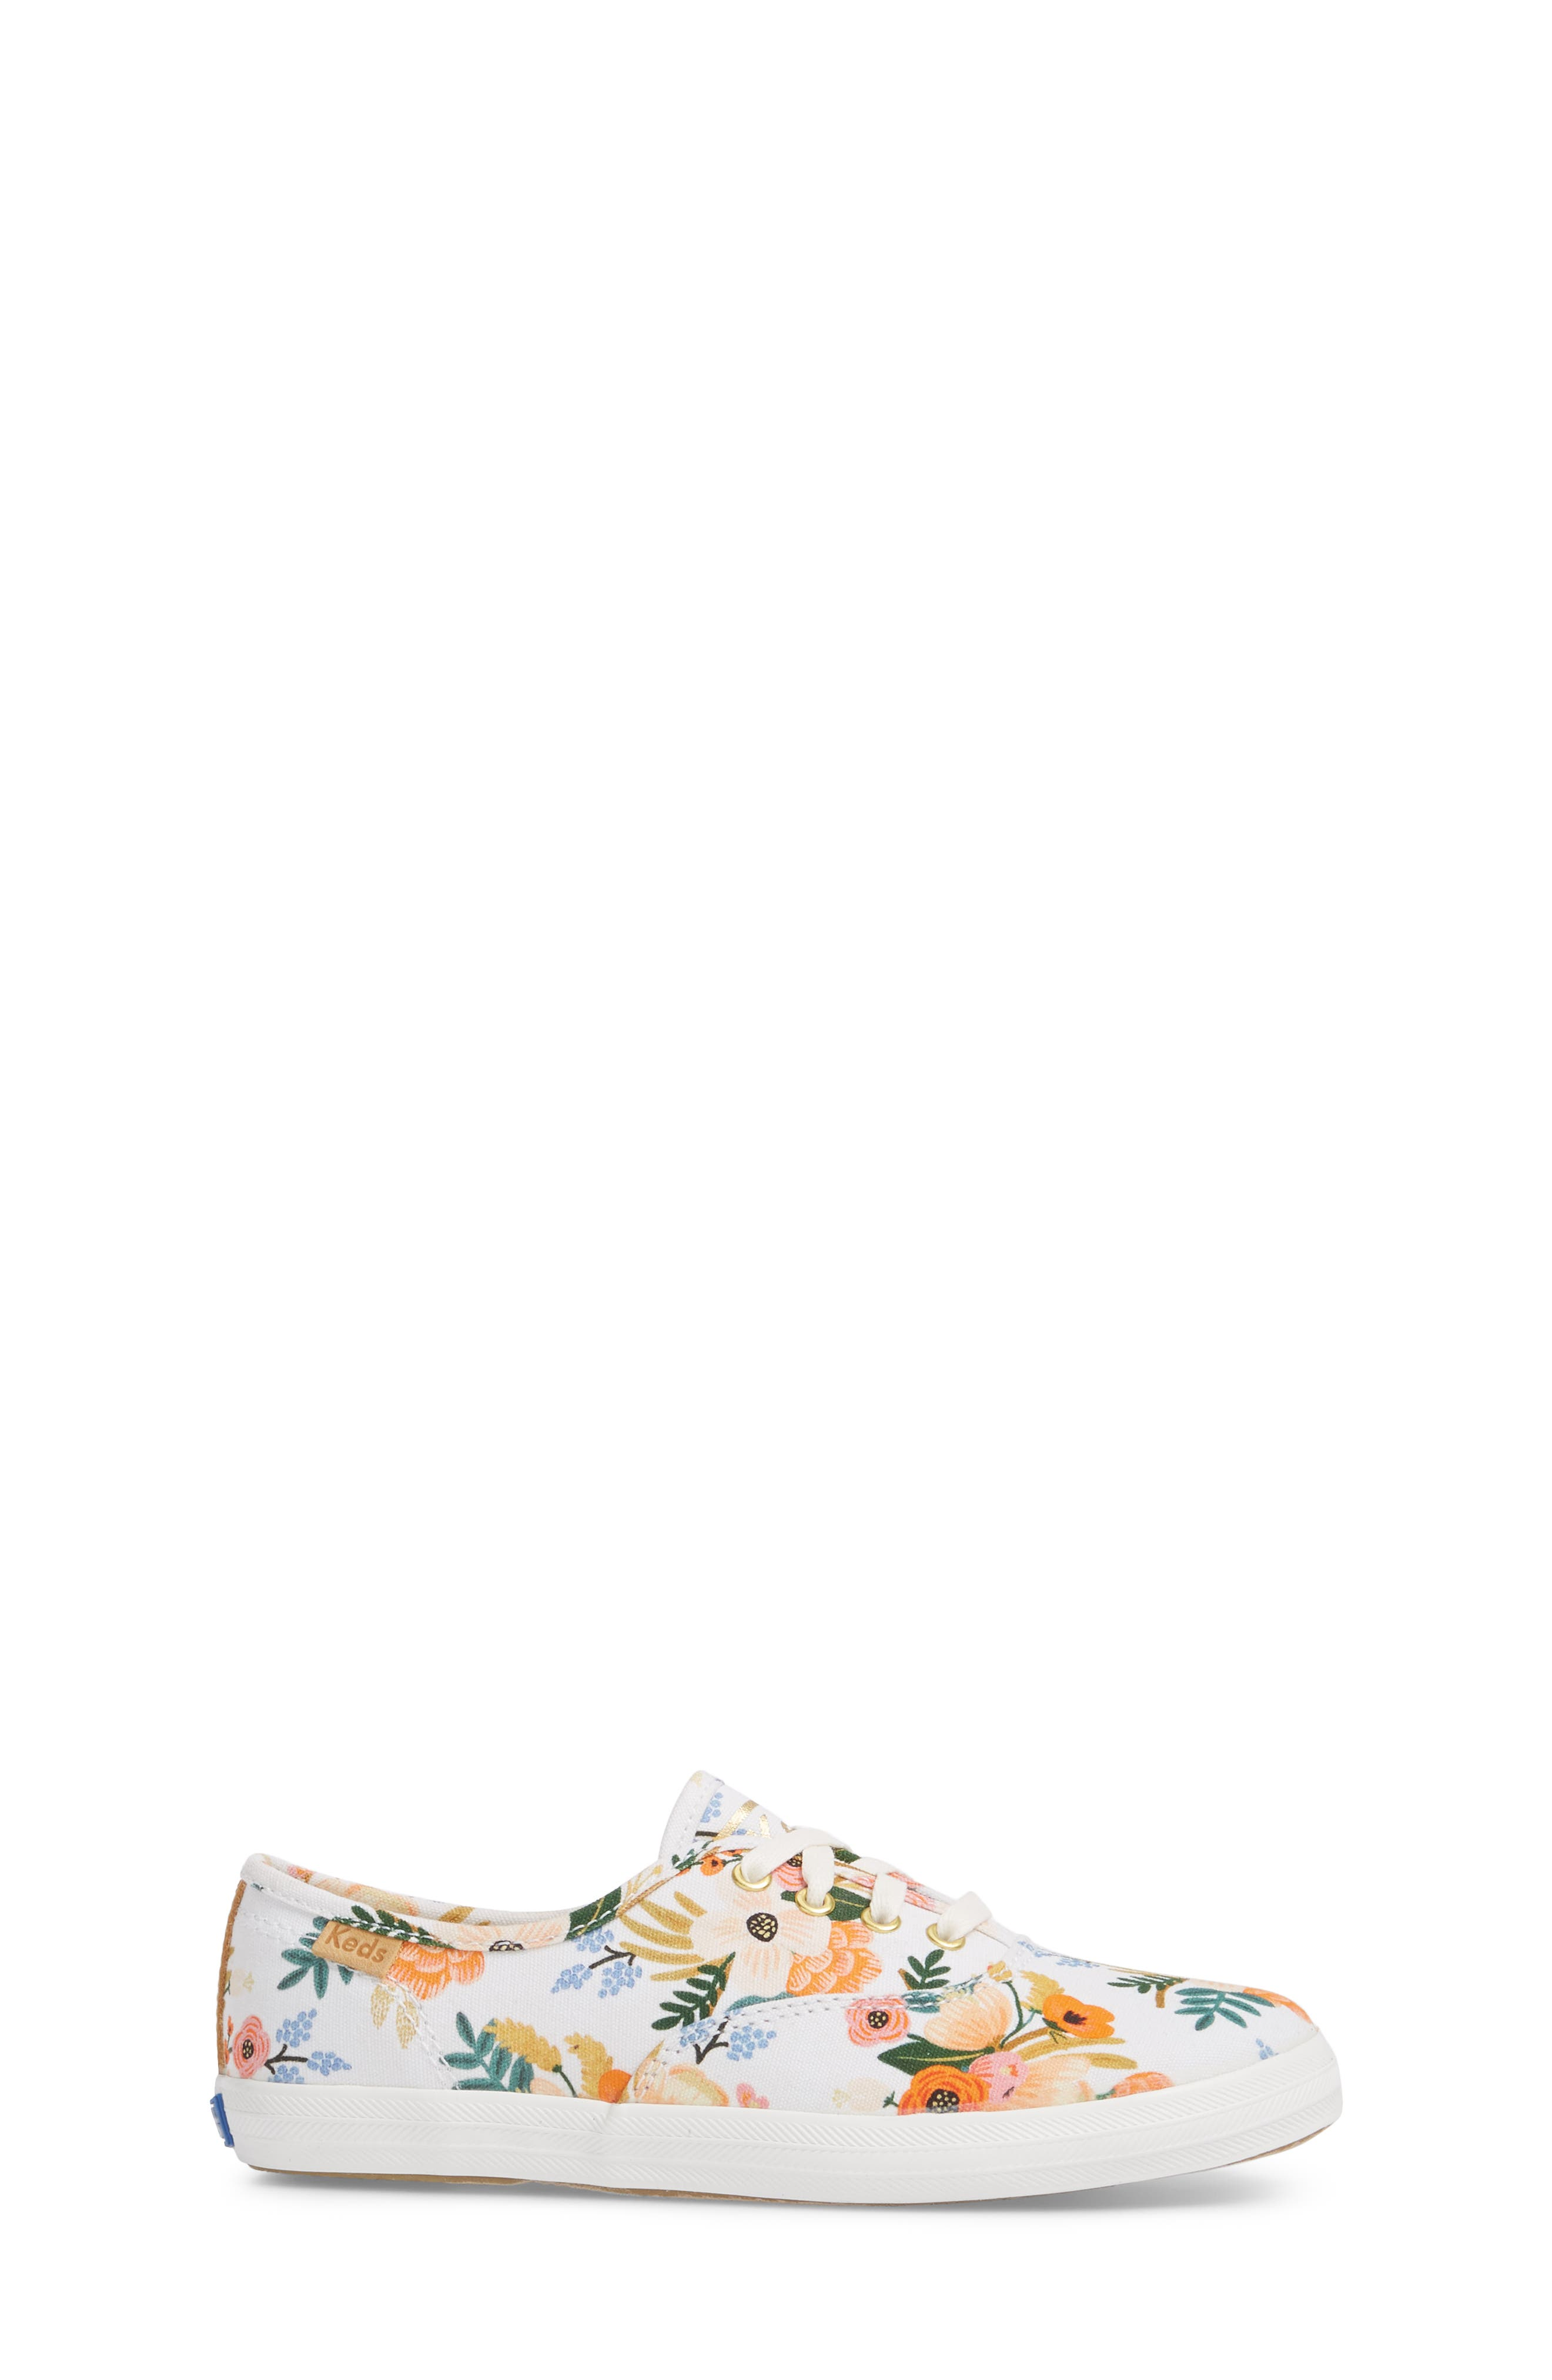 x Rifle Paper Co. Floral Print Champion Sneaker,                             Alternate thumbnail 3, color,                             Lively White